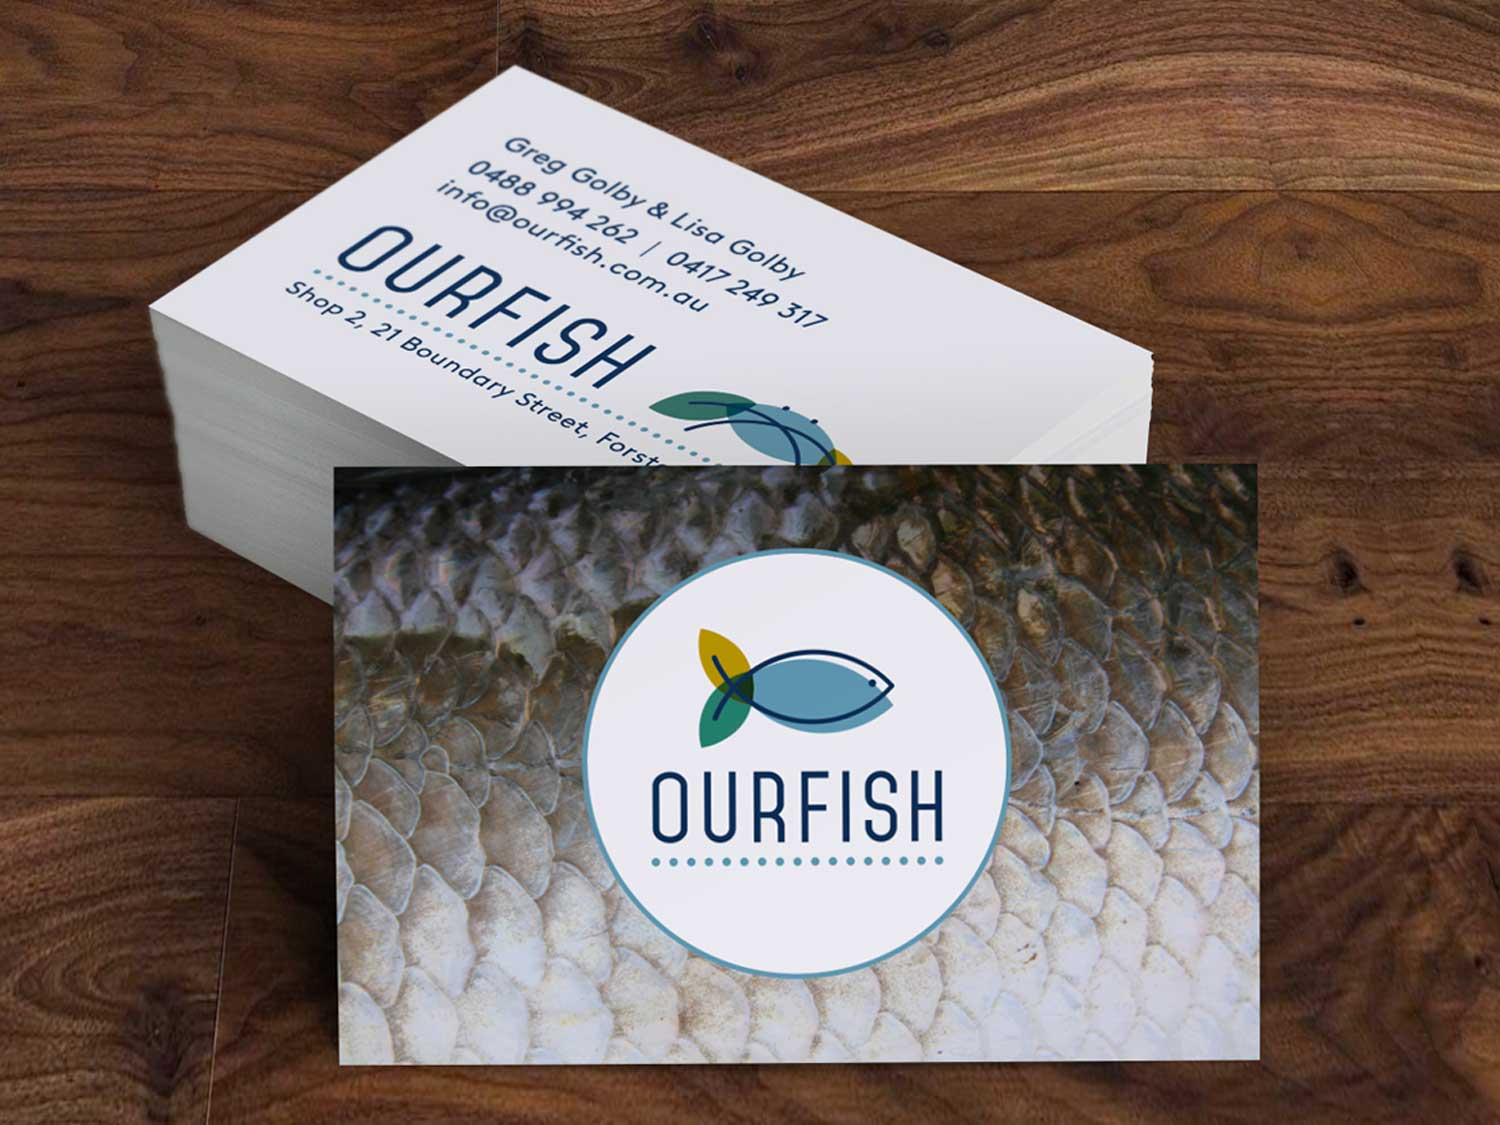 ourfish-branded-business-card-design-heath-and-hoff-forster.jpg